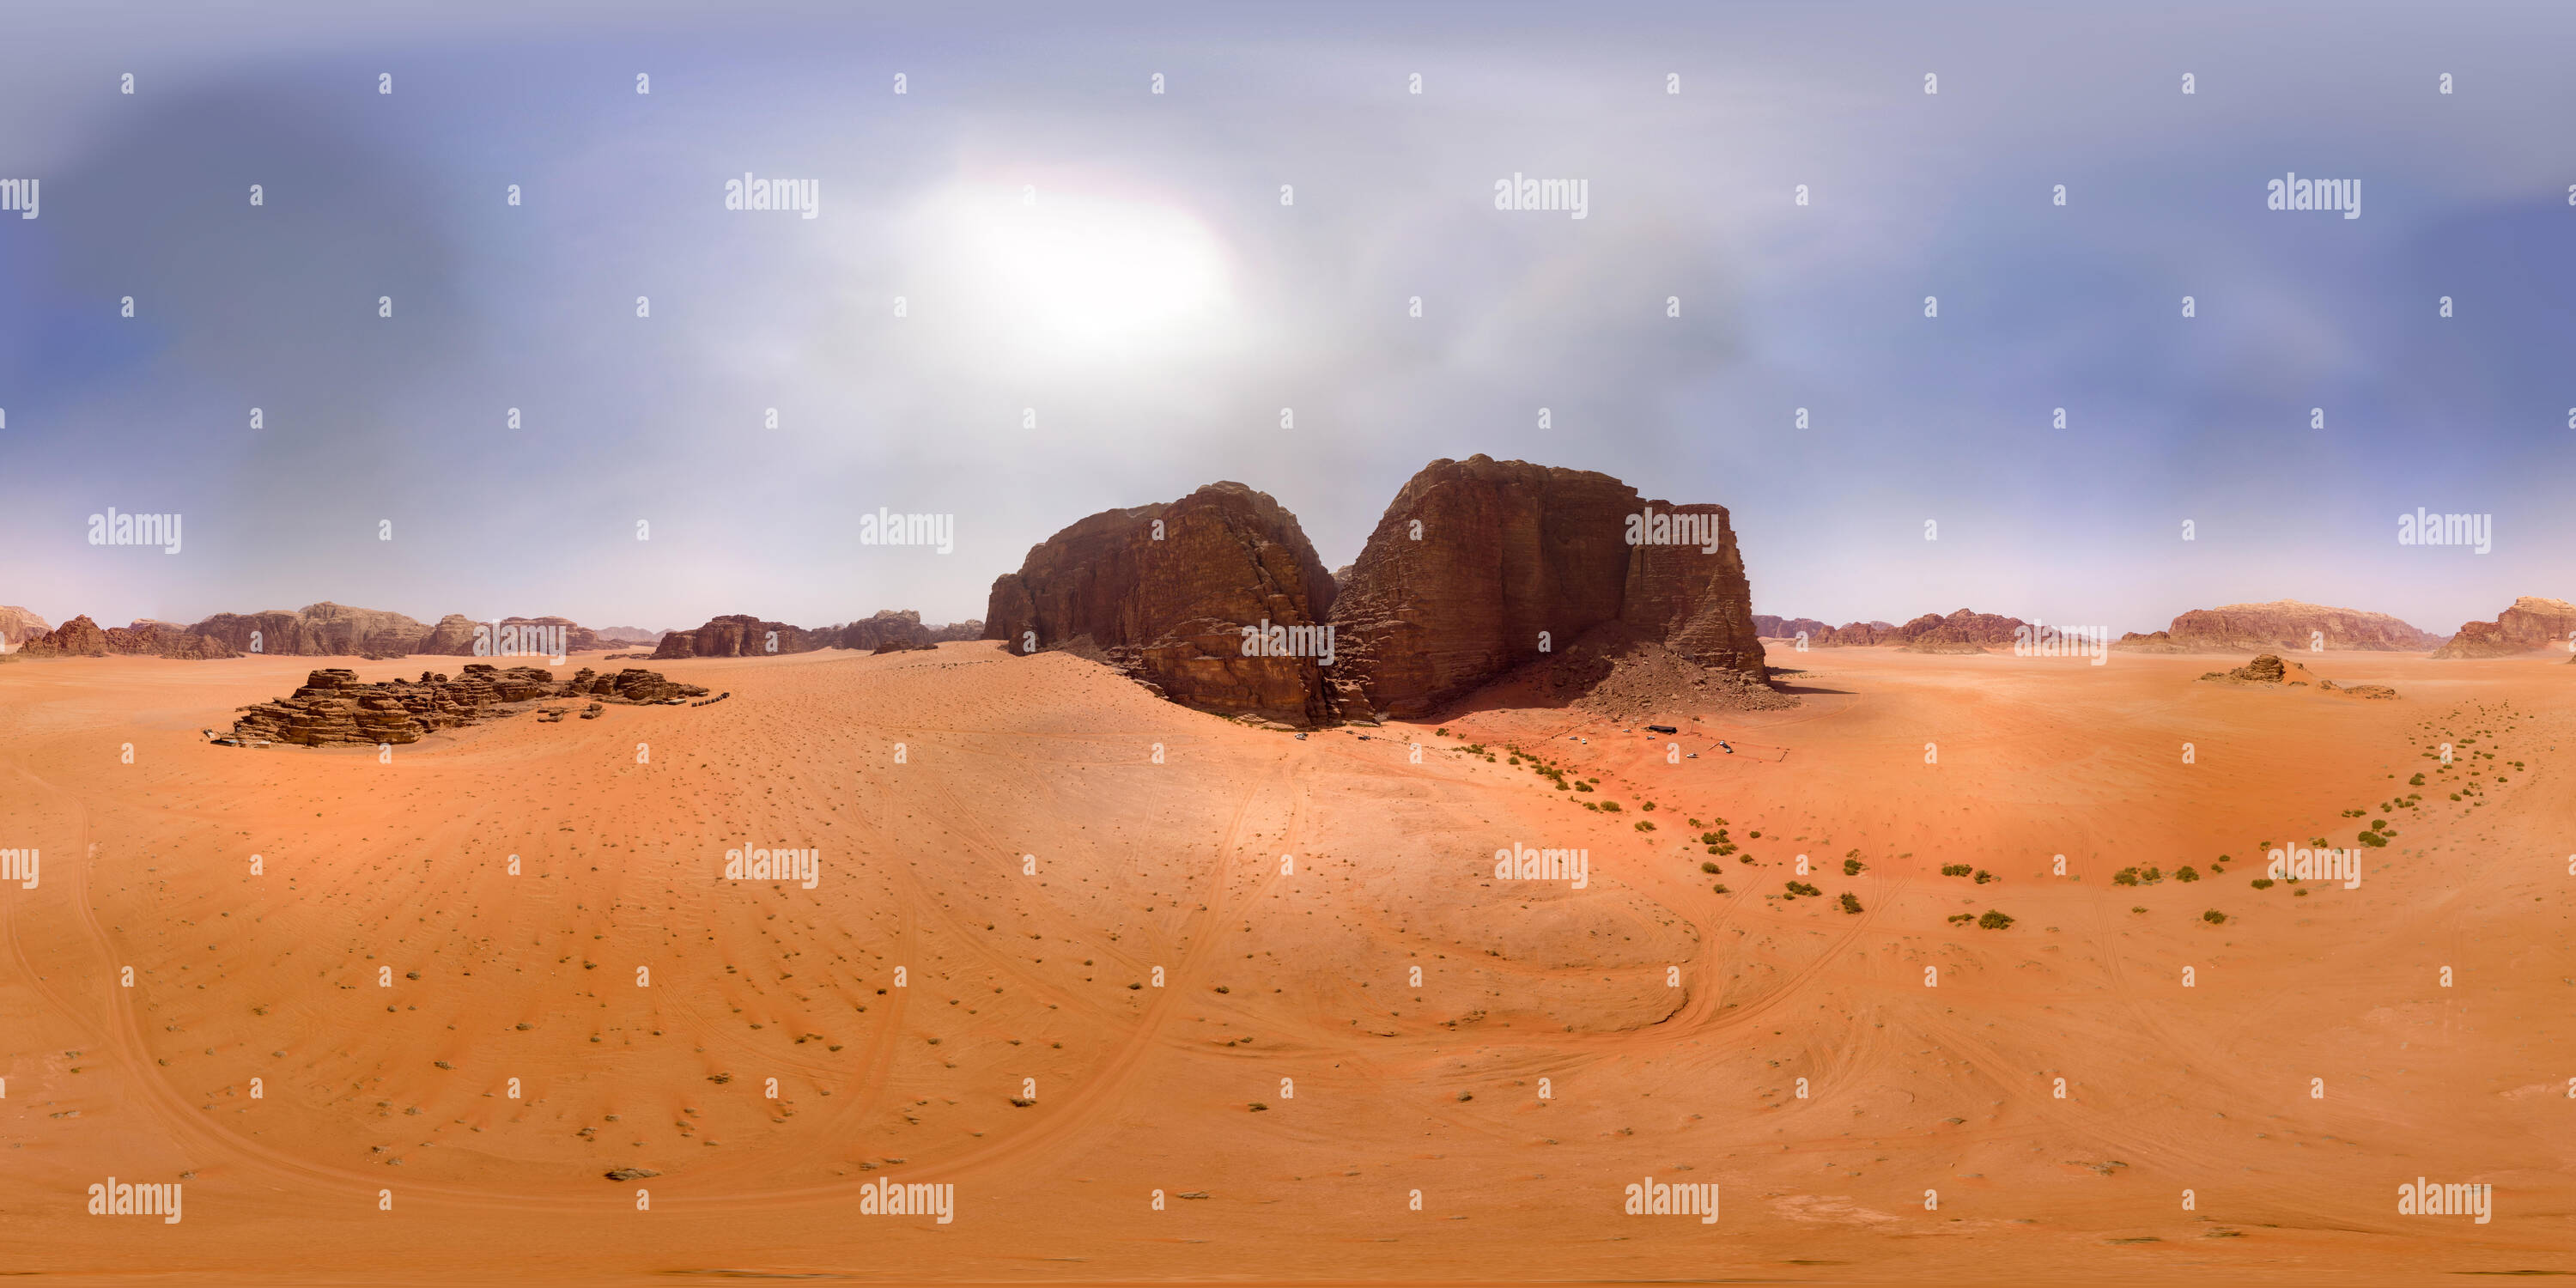 Spherical 360 degree panorama of a high monolith in the desert Wadi Rum, Jordan, taken with the drone - Stock Image